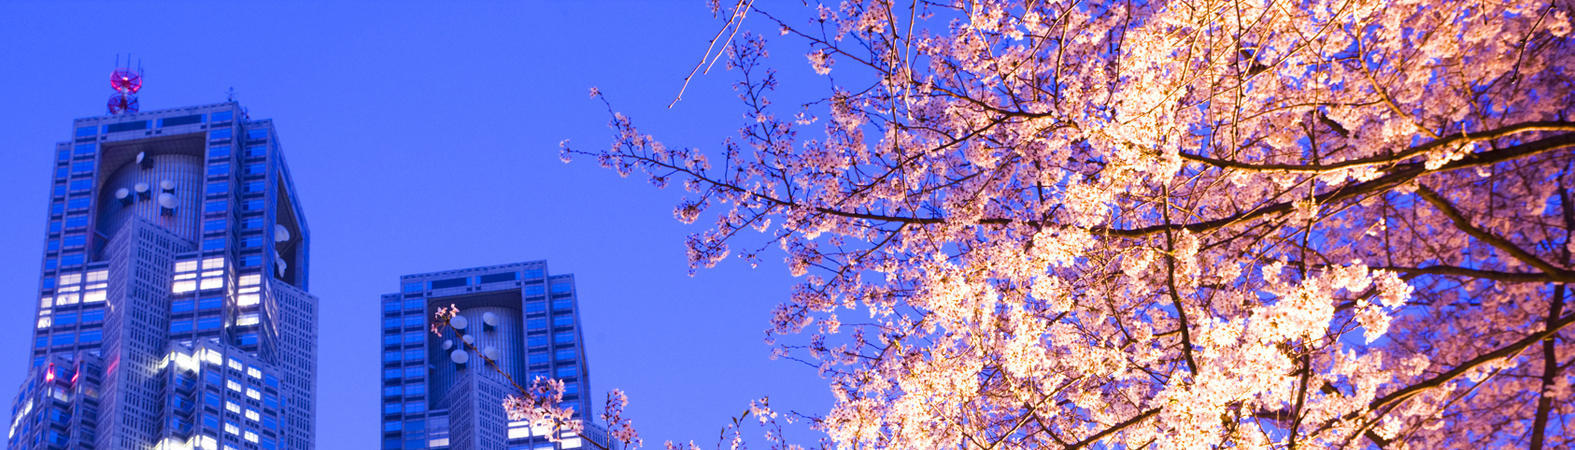 Japan Travel Experts Specializing in Creating Tailor-Made Itineraries